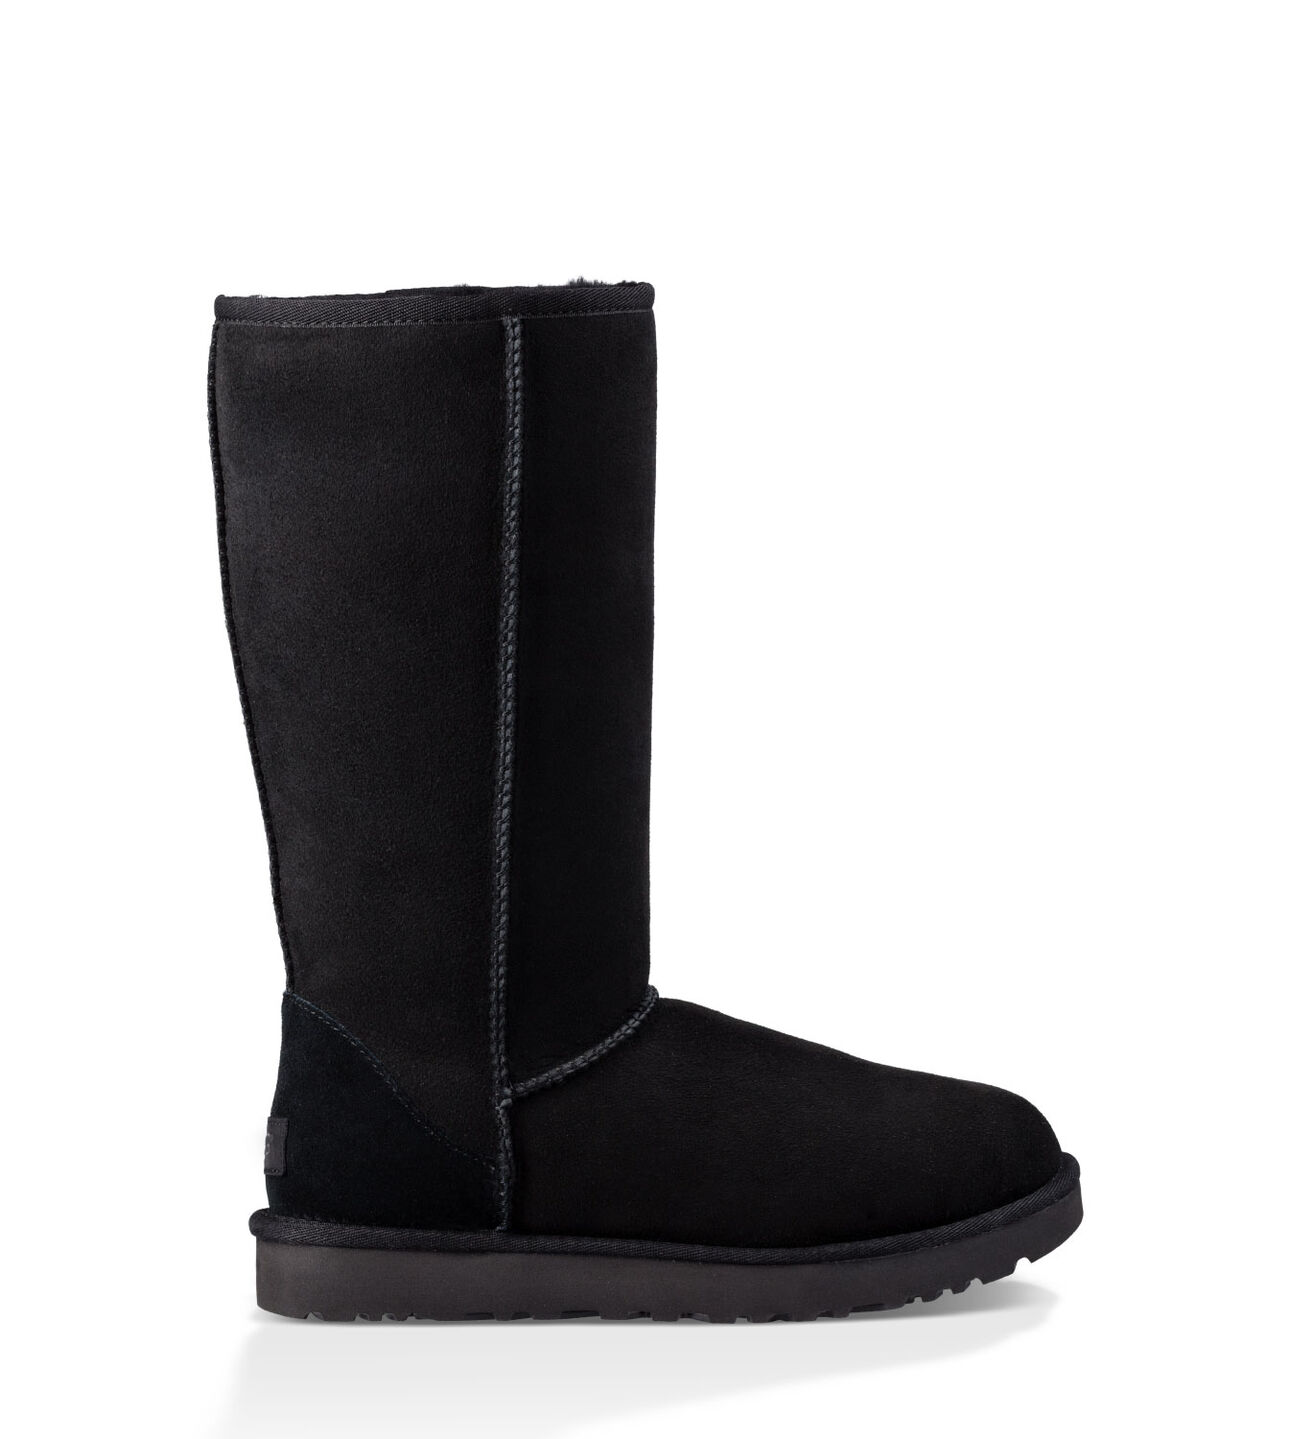 95b39db38 Classic Tall Sheepskin Boots | UGG® Official